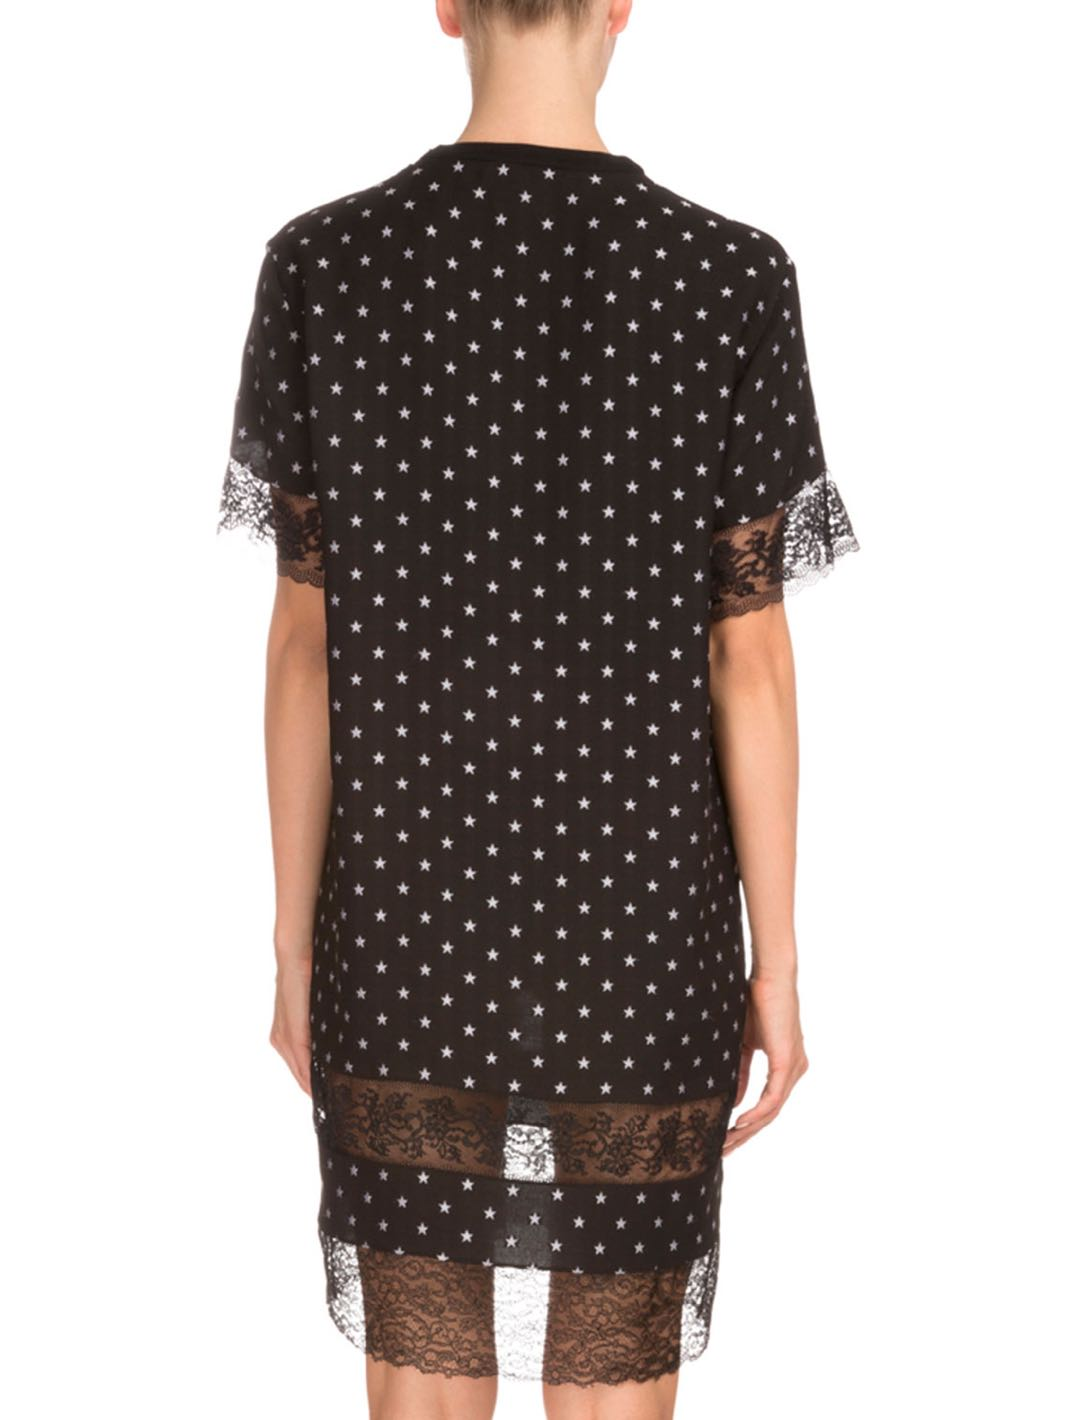 Star Print Lace-Inset Shift Jacquard Dress - The Bobby Boga